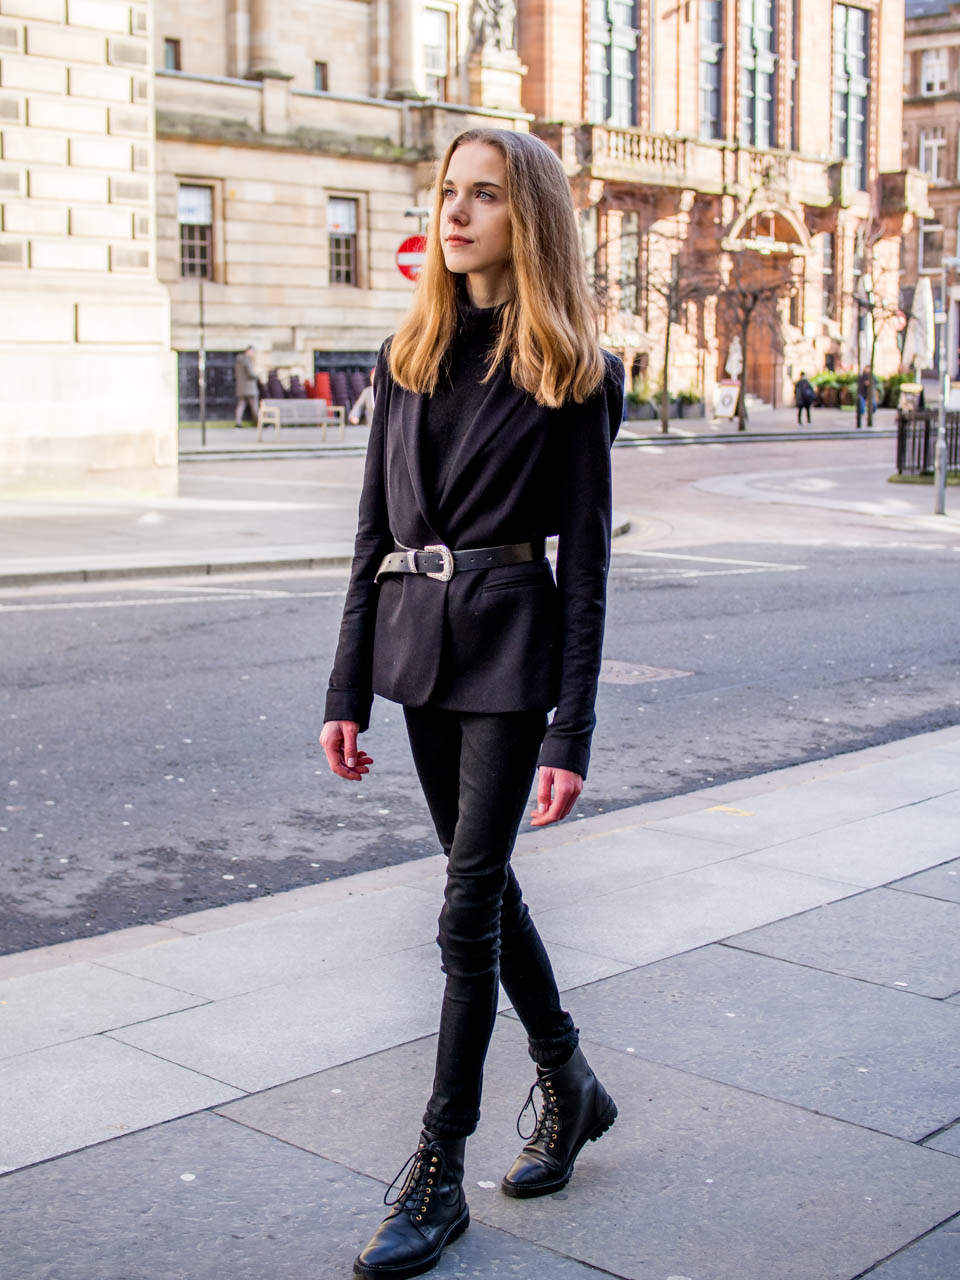 Chic all black outfit with blazer and belt - Kokomusta asu bleiserin ja vyön kanssa